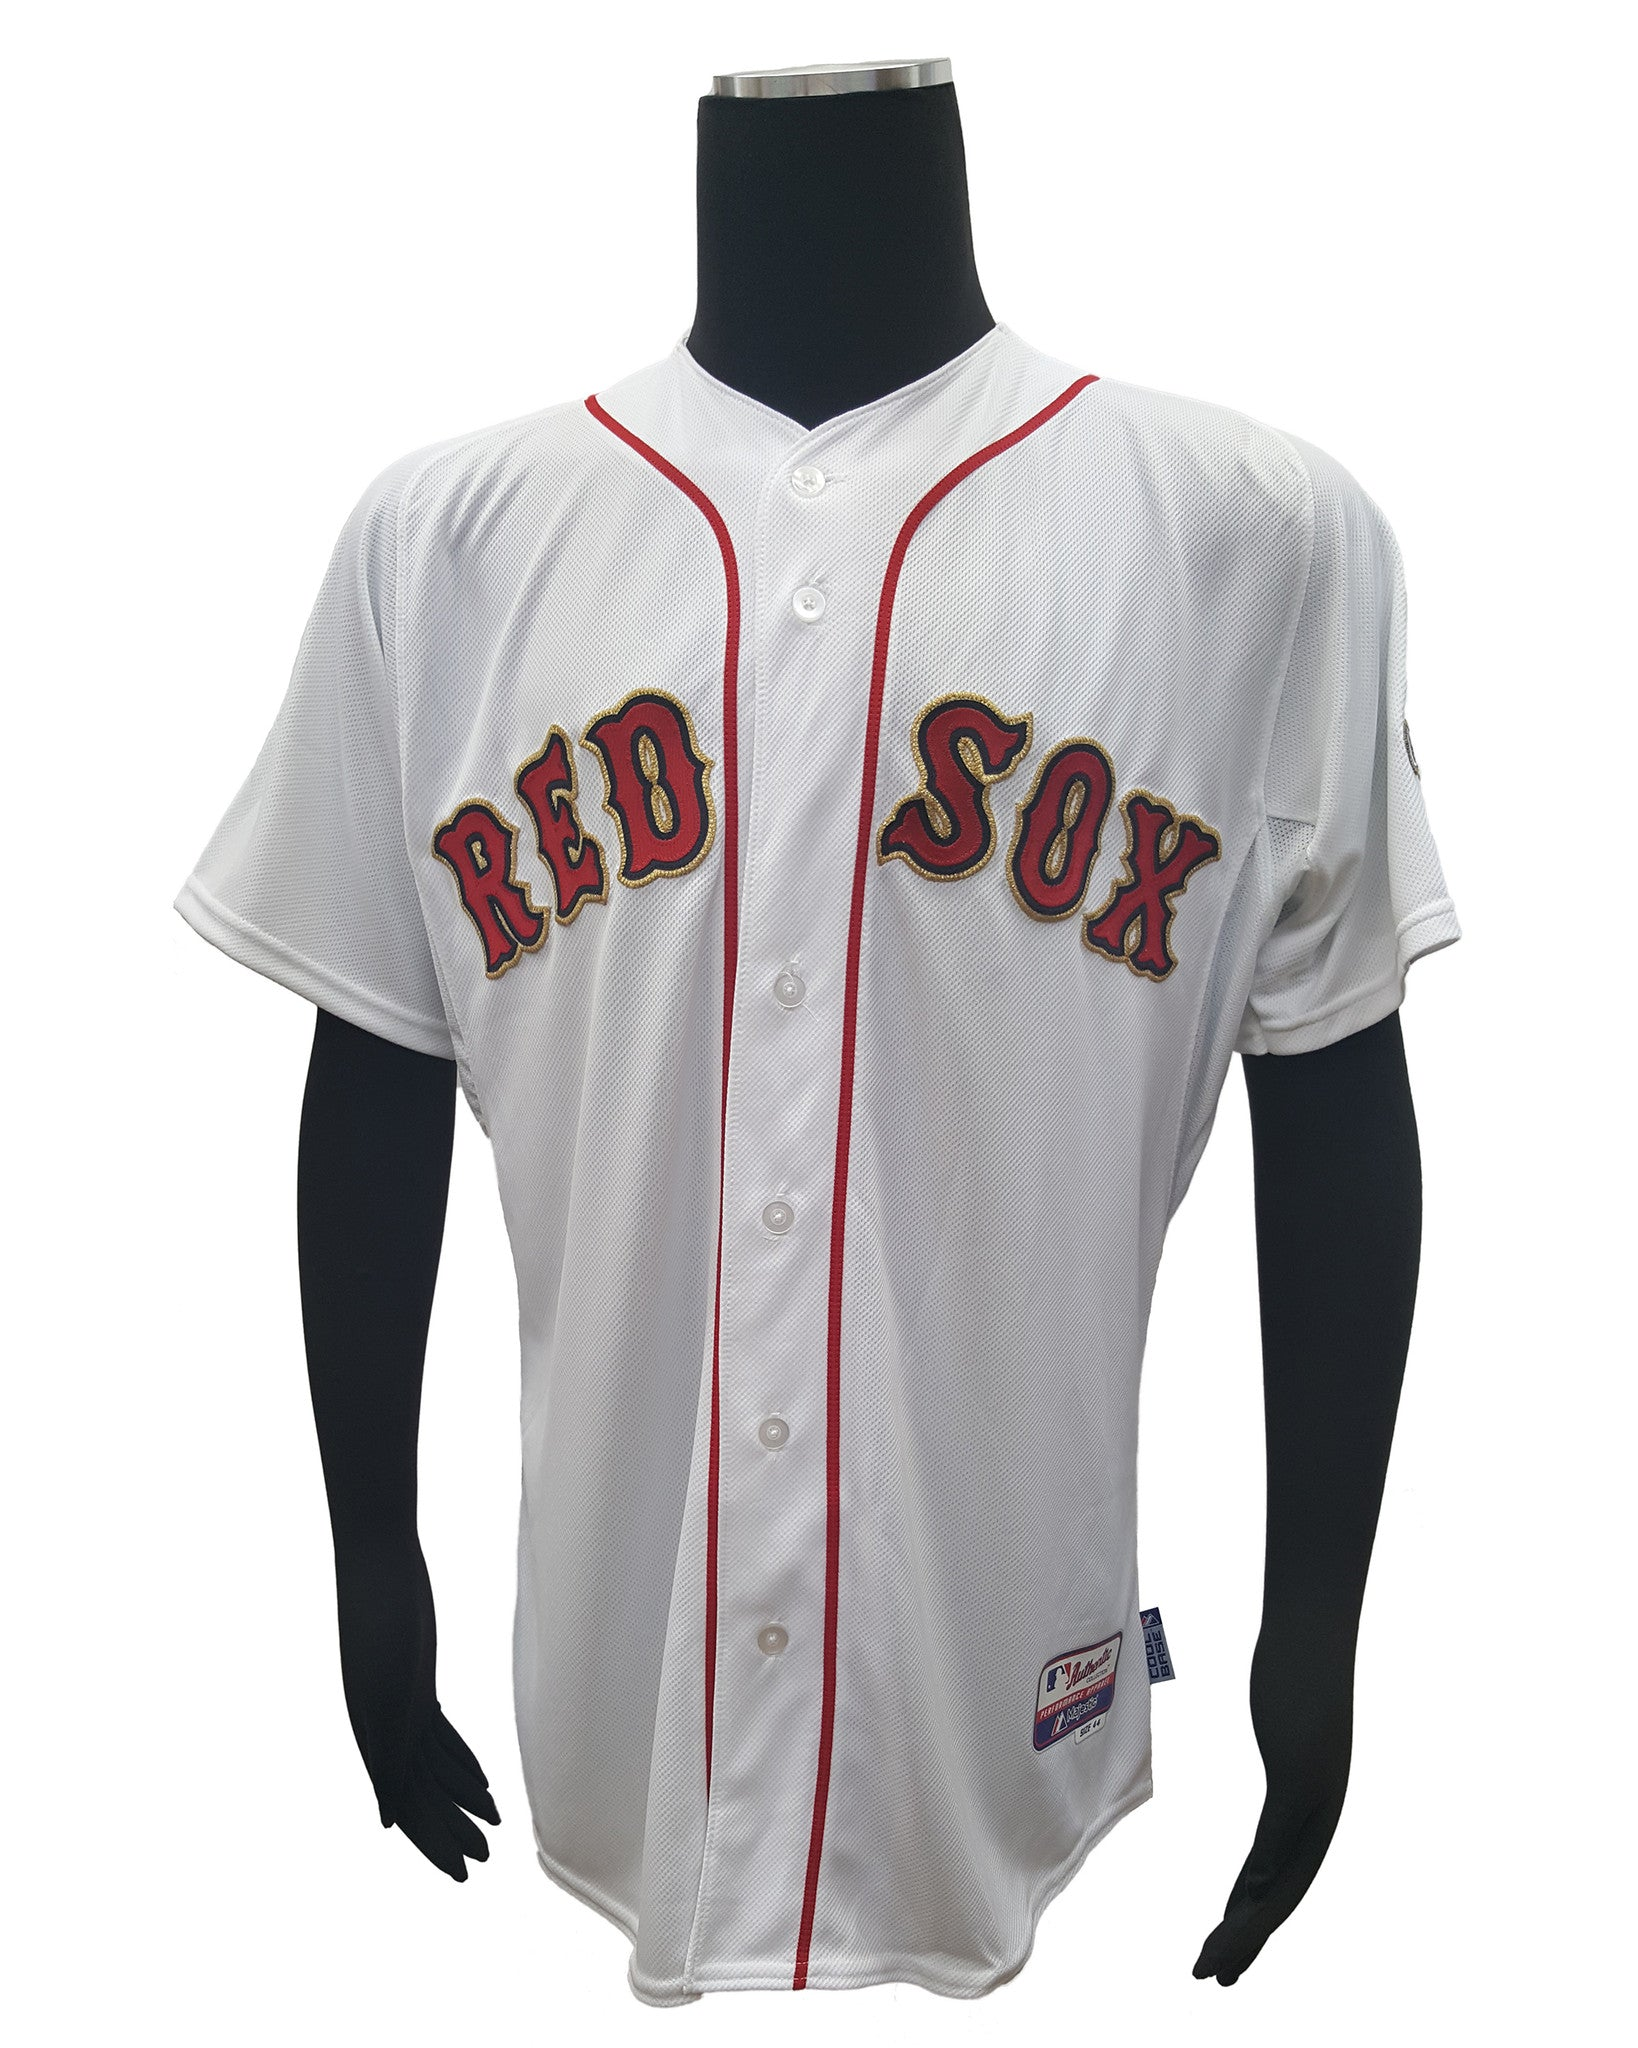 41dab5c4 Majestic Men's Boston Red Sox 2013 World Series Champions Replica Jersey